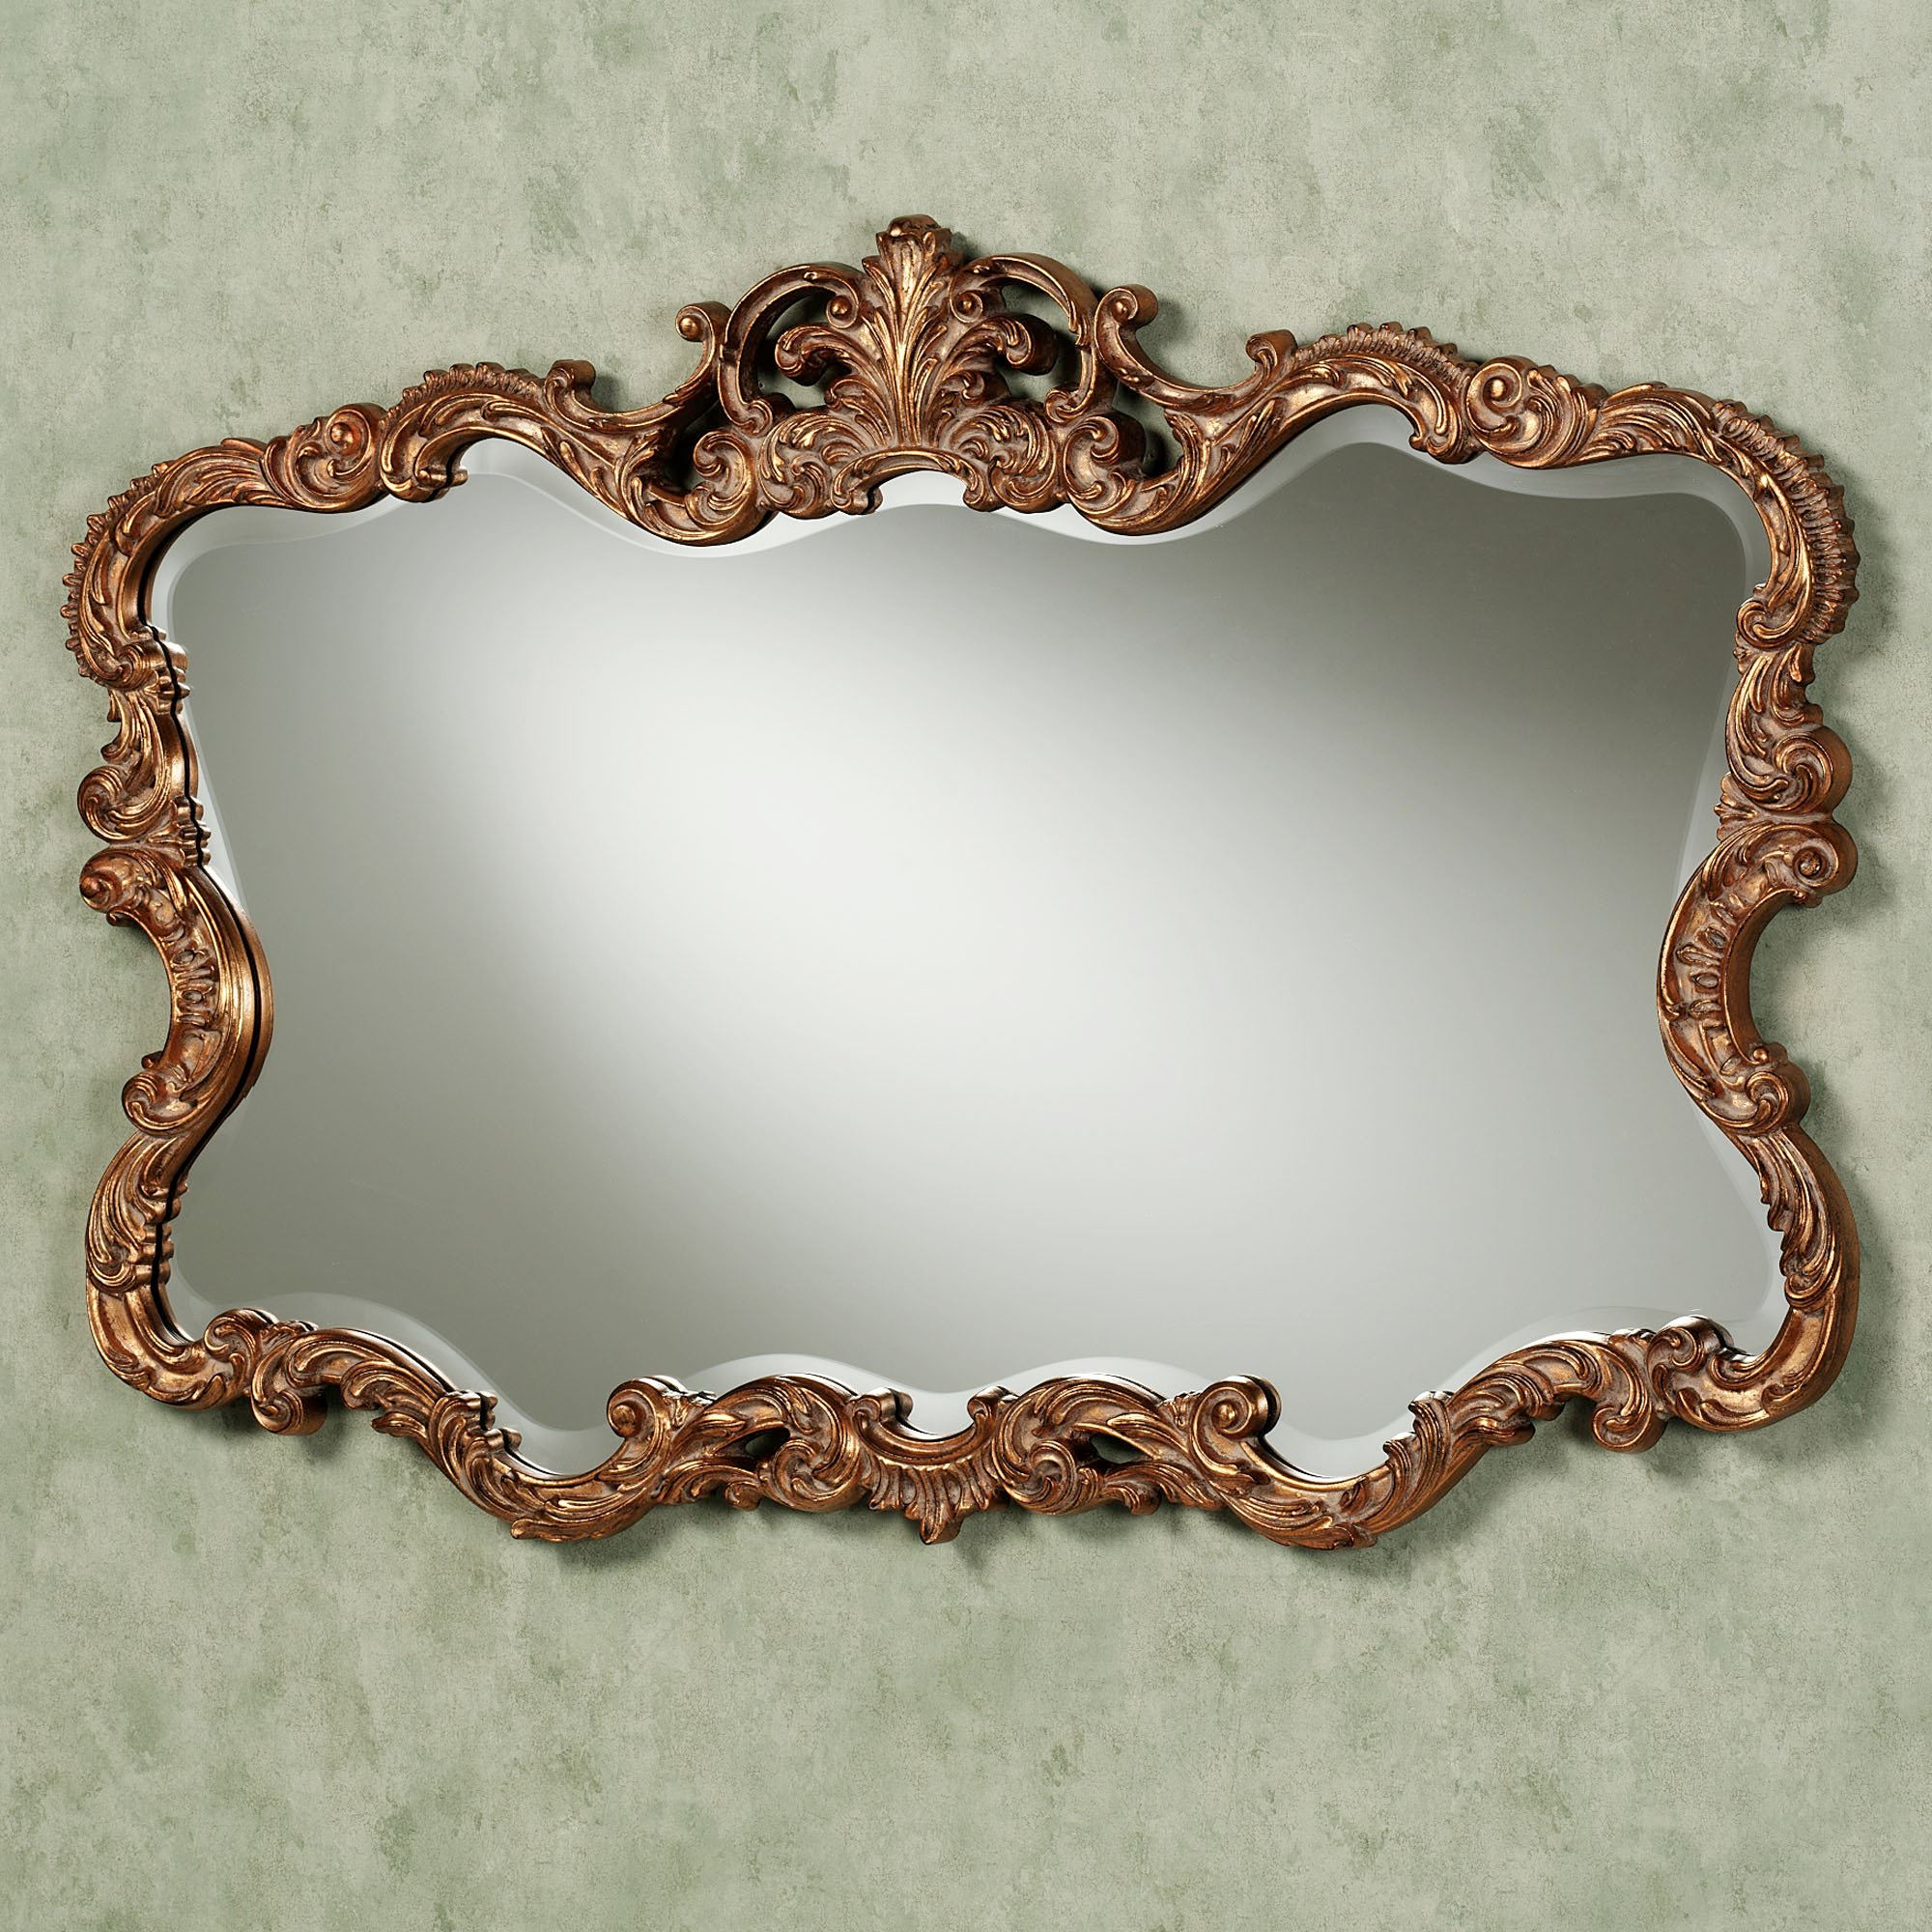 Tamsyn Wall Mirror Intended For Widely Used Antique Gold Wall Mirrors (Gallery 13 of 20)